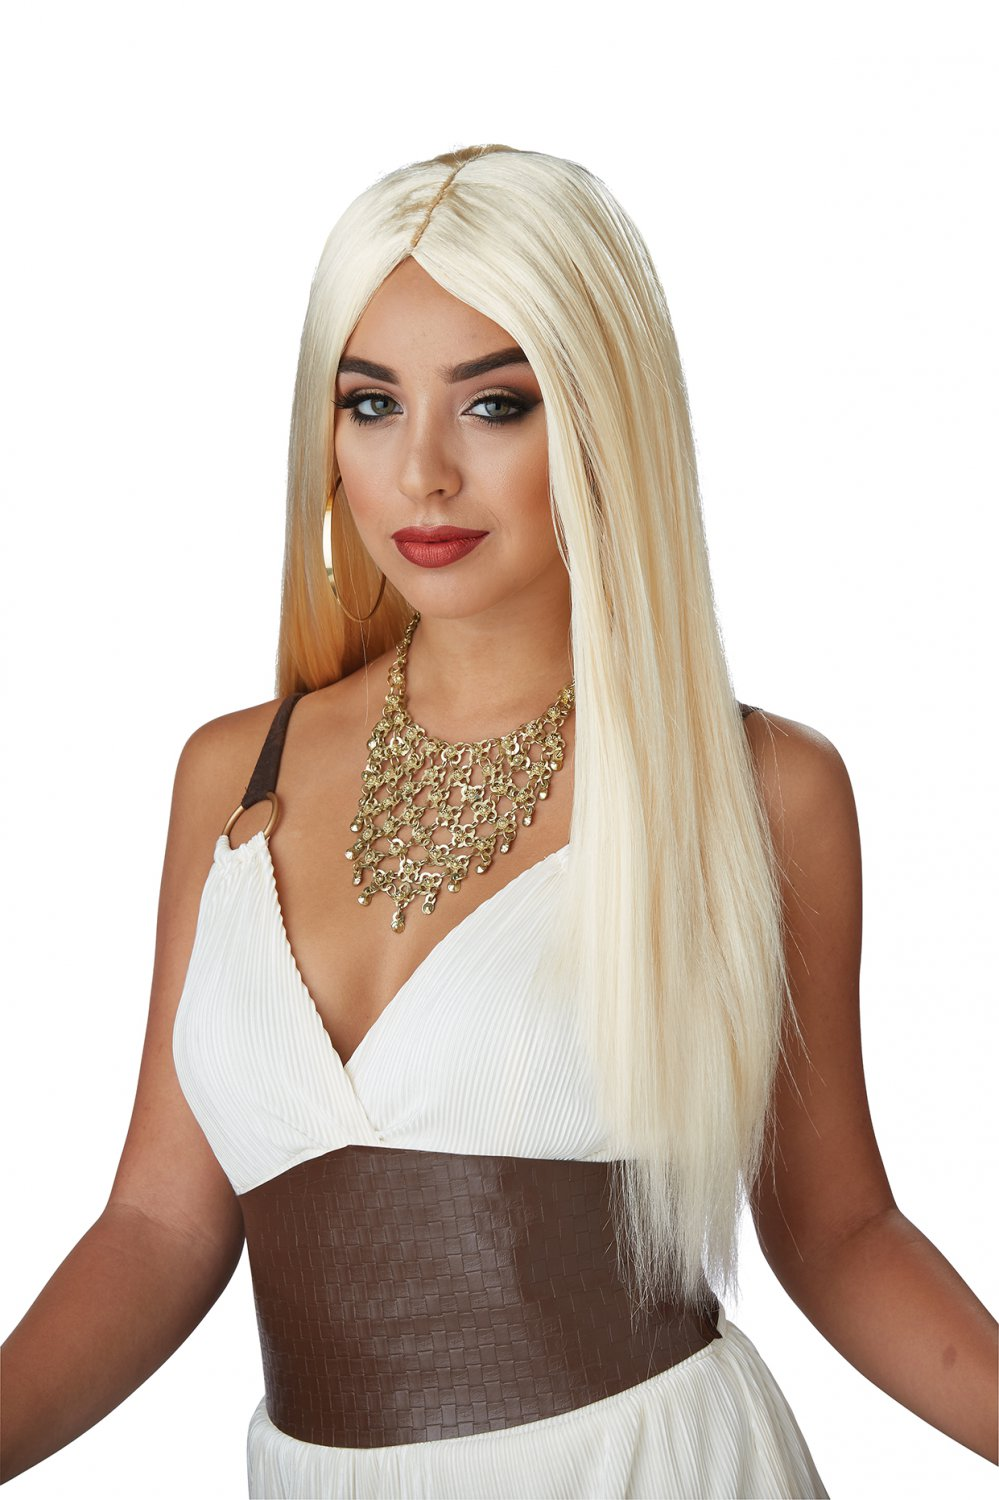 #70876 Spartan Greek Demigoddess Queen Blonde Costume Accessory Wig